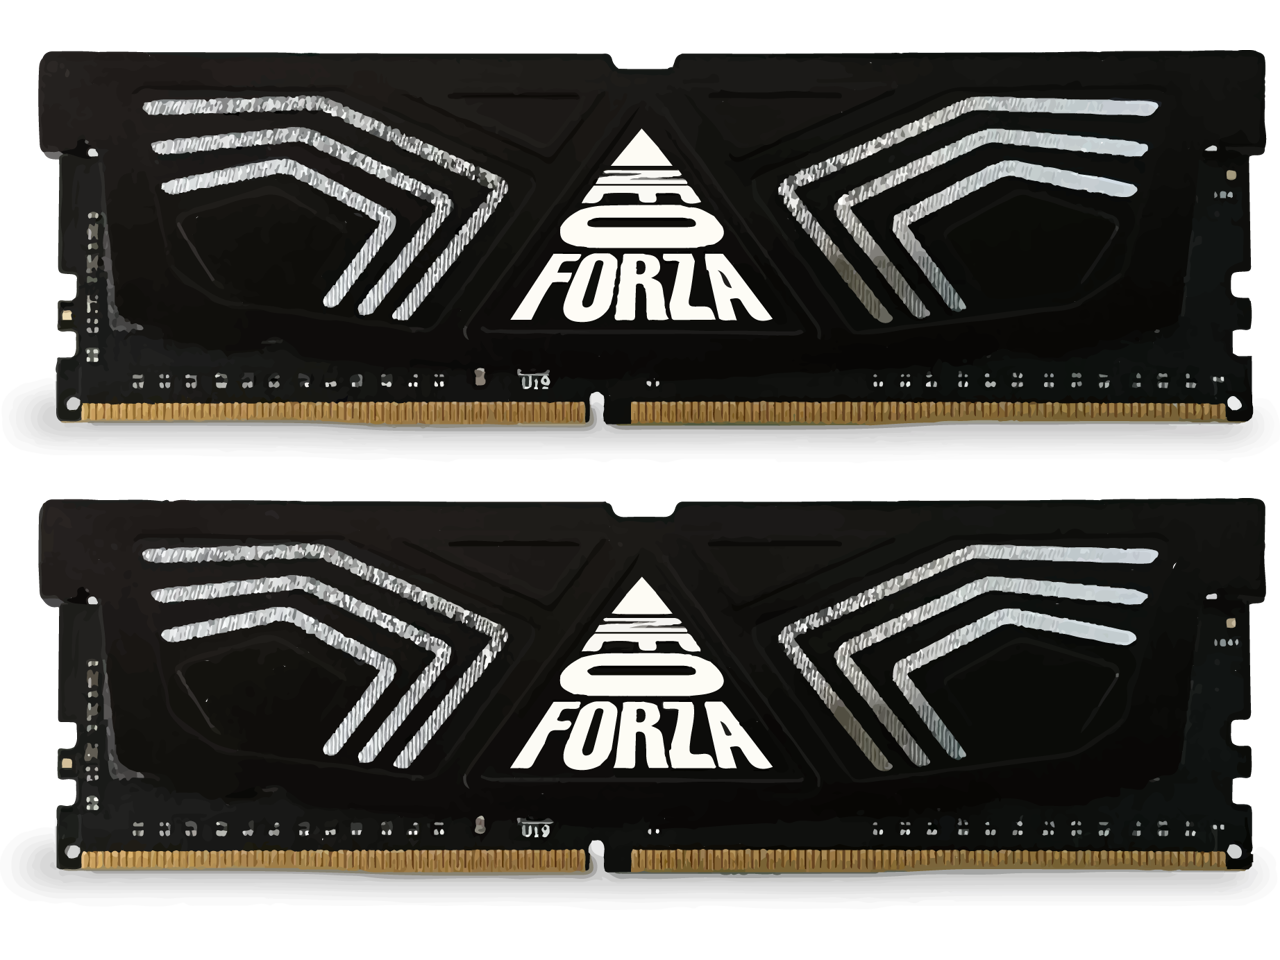 Neo Forza Faye 16GB (2 x 8GB) [DDR4 3600 (PC4 28800), 18-19-19-39] 288-Pin DDR4 SDRAM for $71.99 with Free Shipping